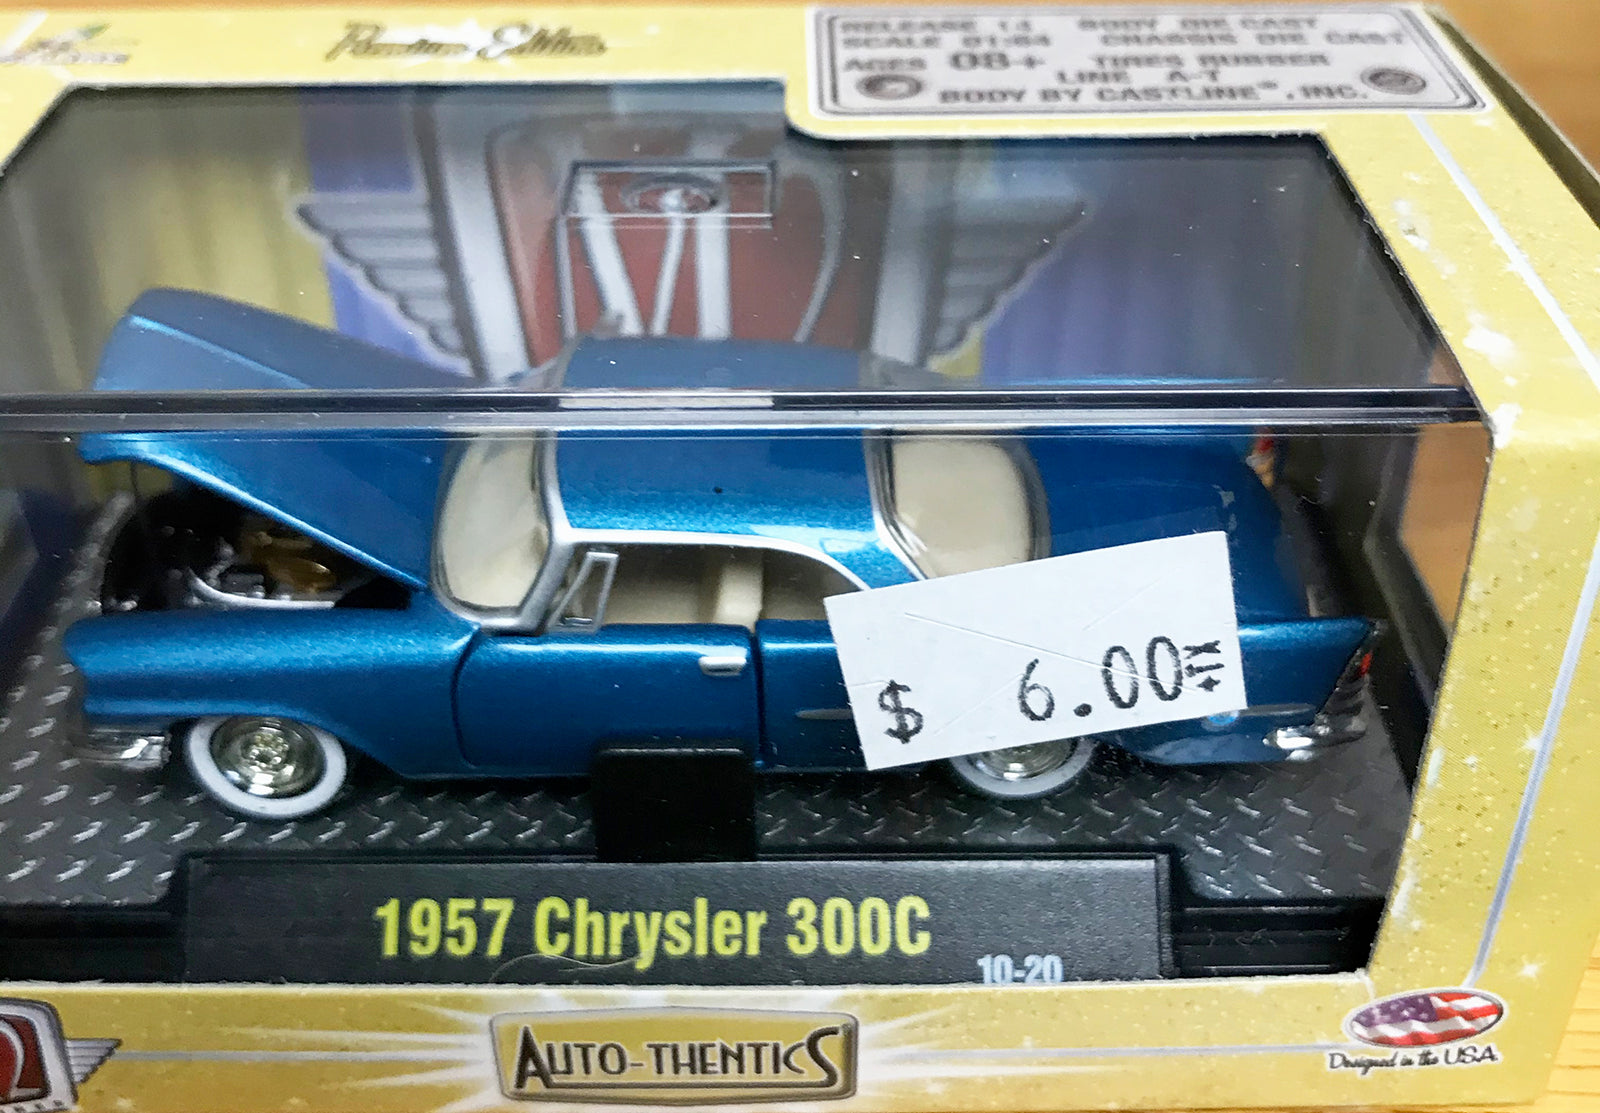 S 1957 Chrysler 300C - Blue